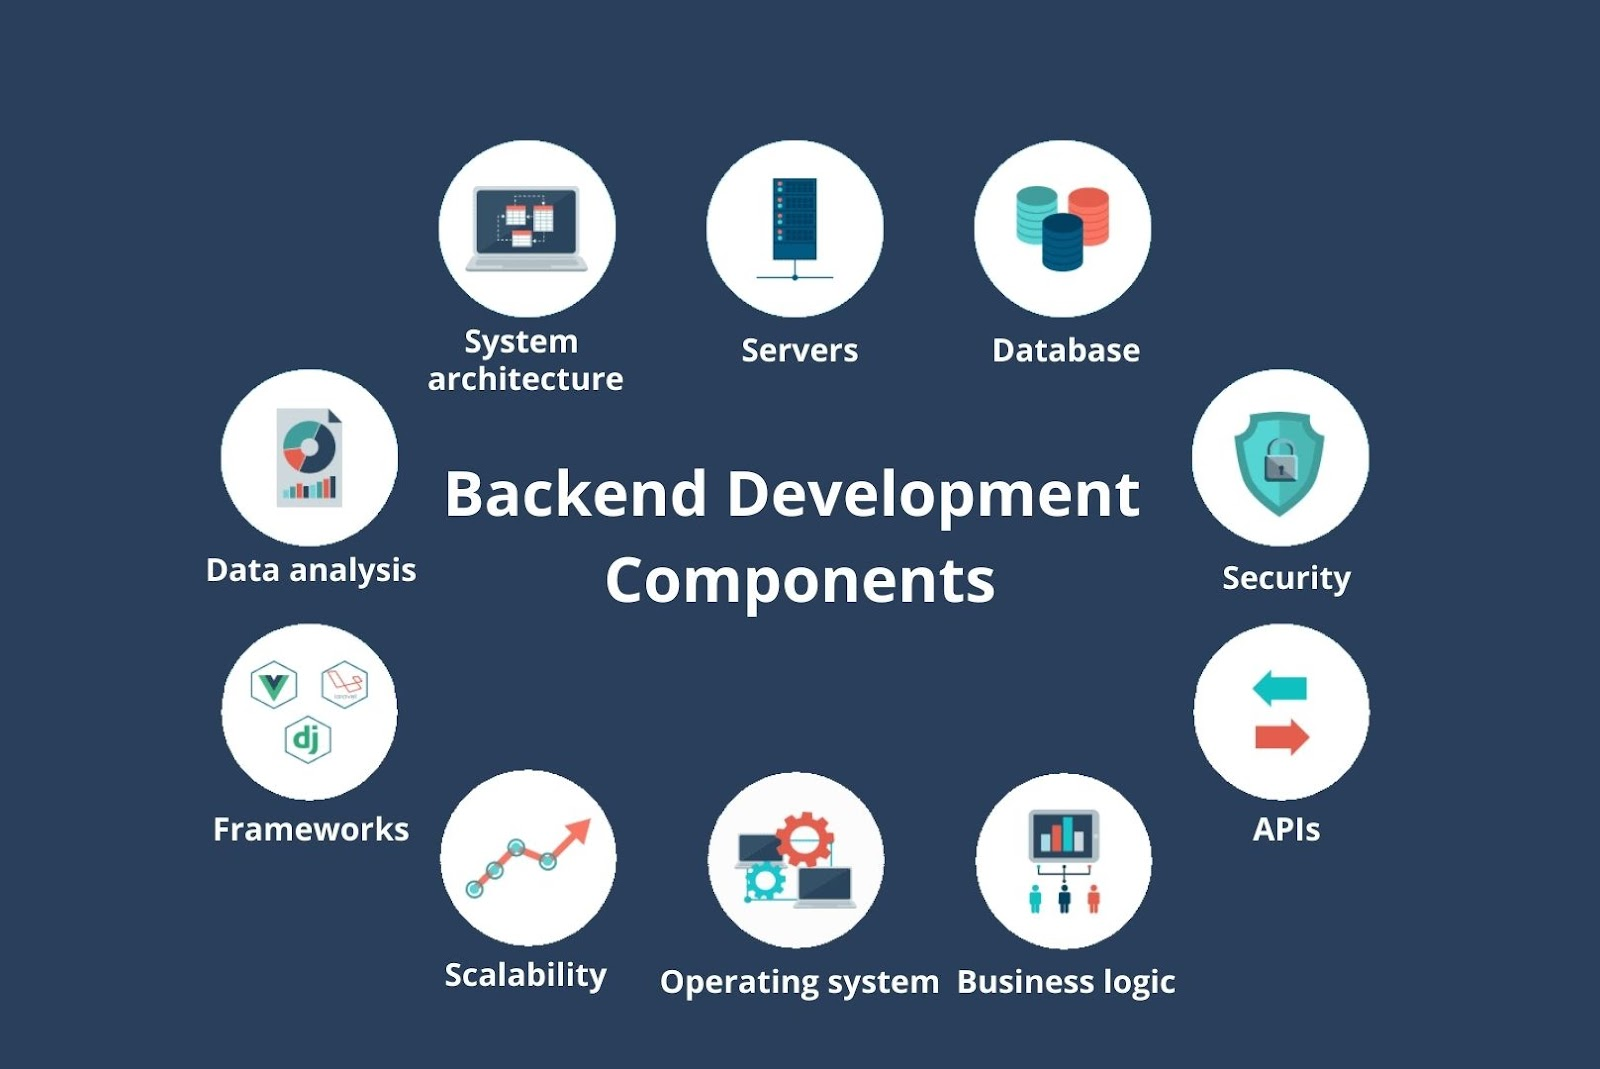 Backend development components